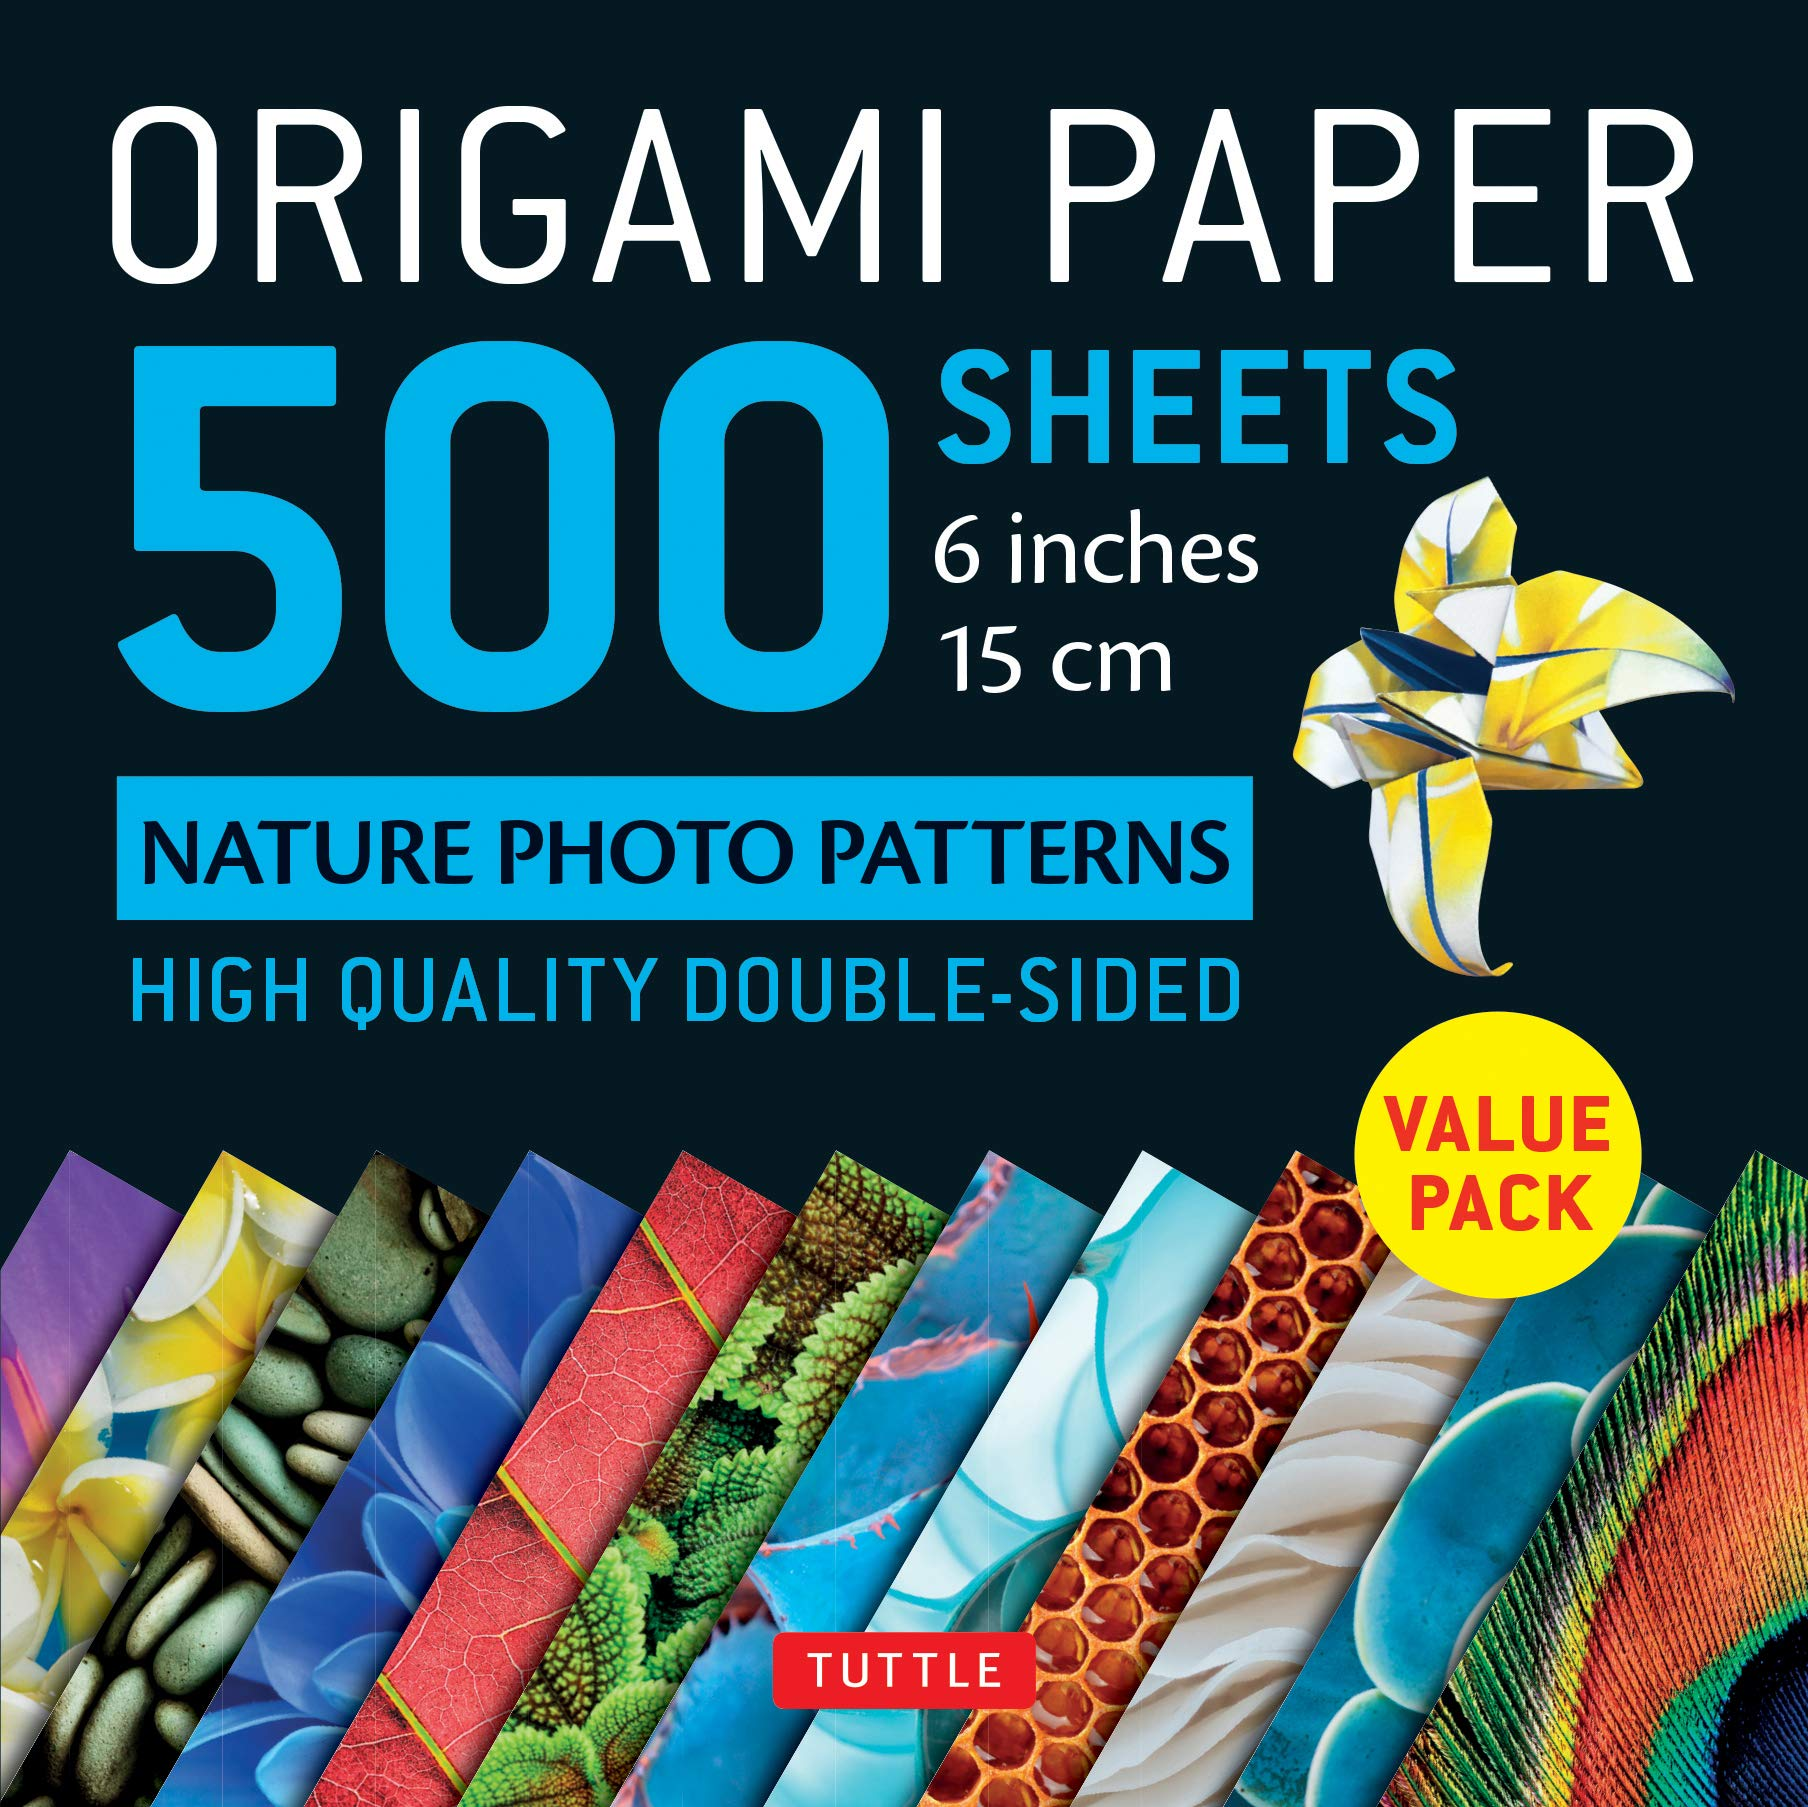 Origami Paper sheets Nature Patterns product image